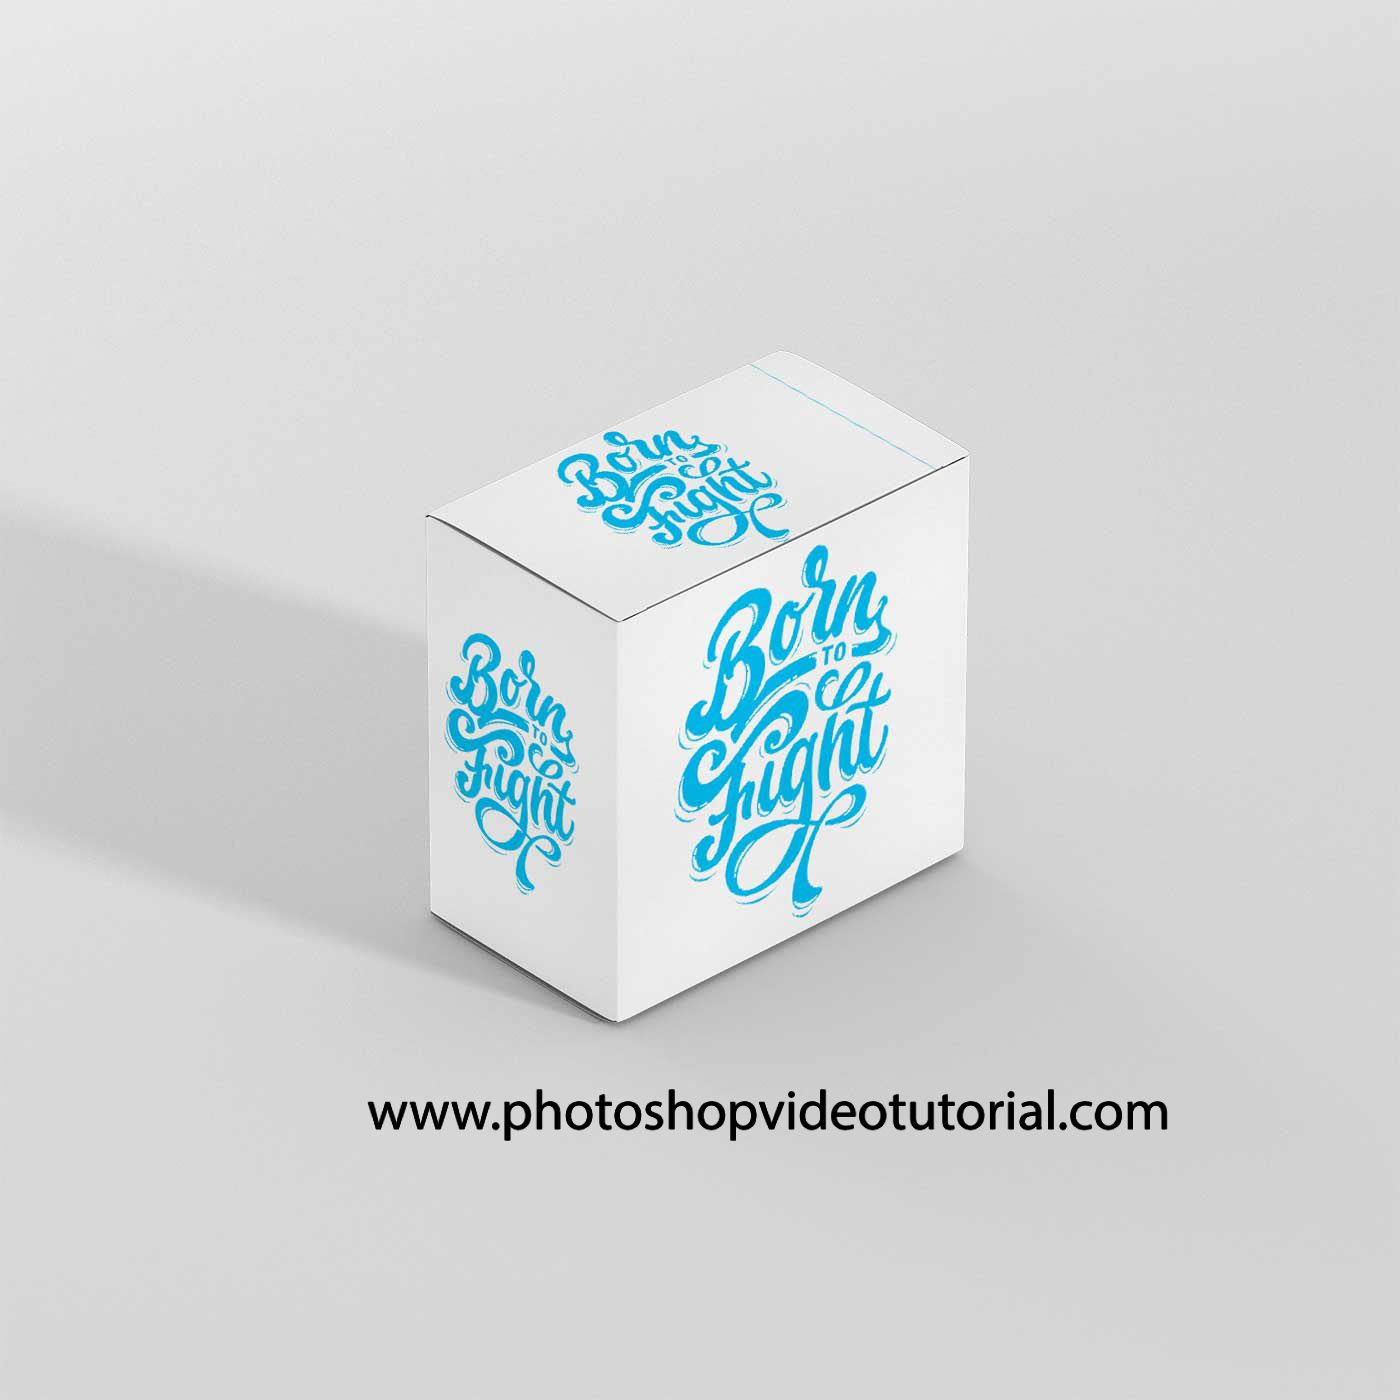 Download Free Download Box Mockup Psd Branding Download Downloadpsd Free Freemockup Freepsd Freebie Mock Up Mockup In 2021 Mockup Free Psd Box Mockup Free Logo Mockup